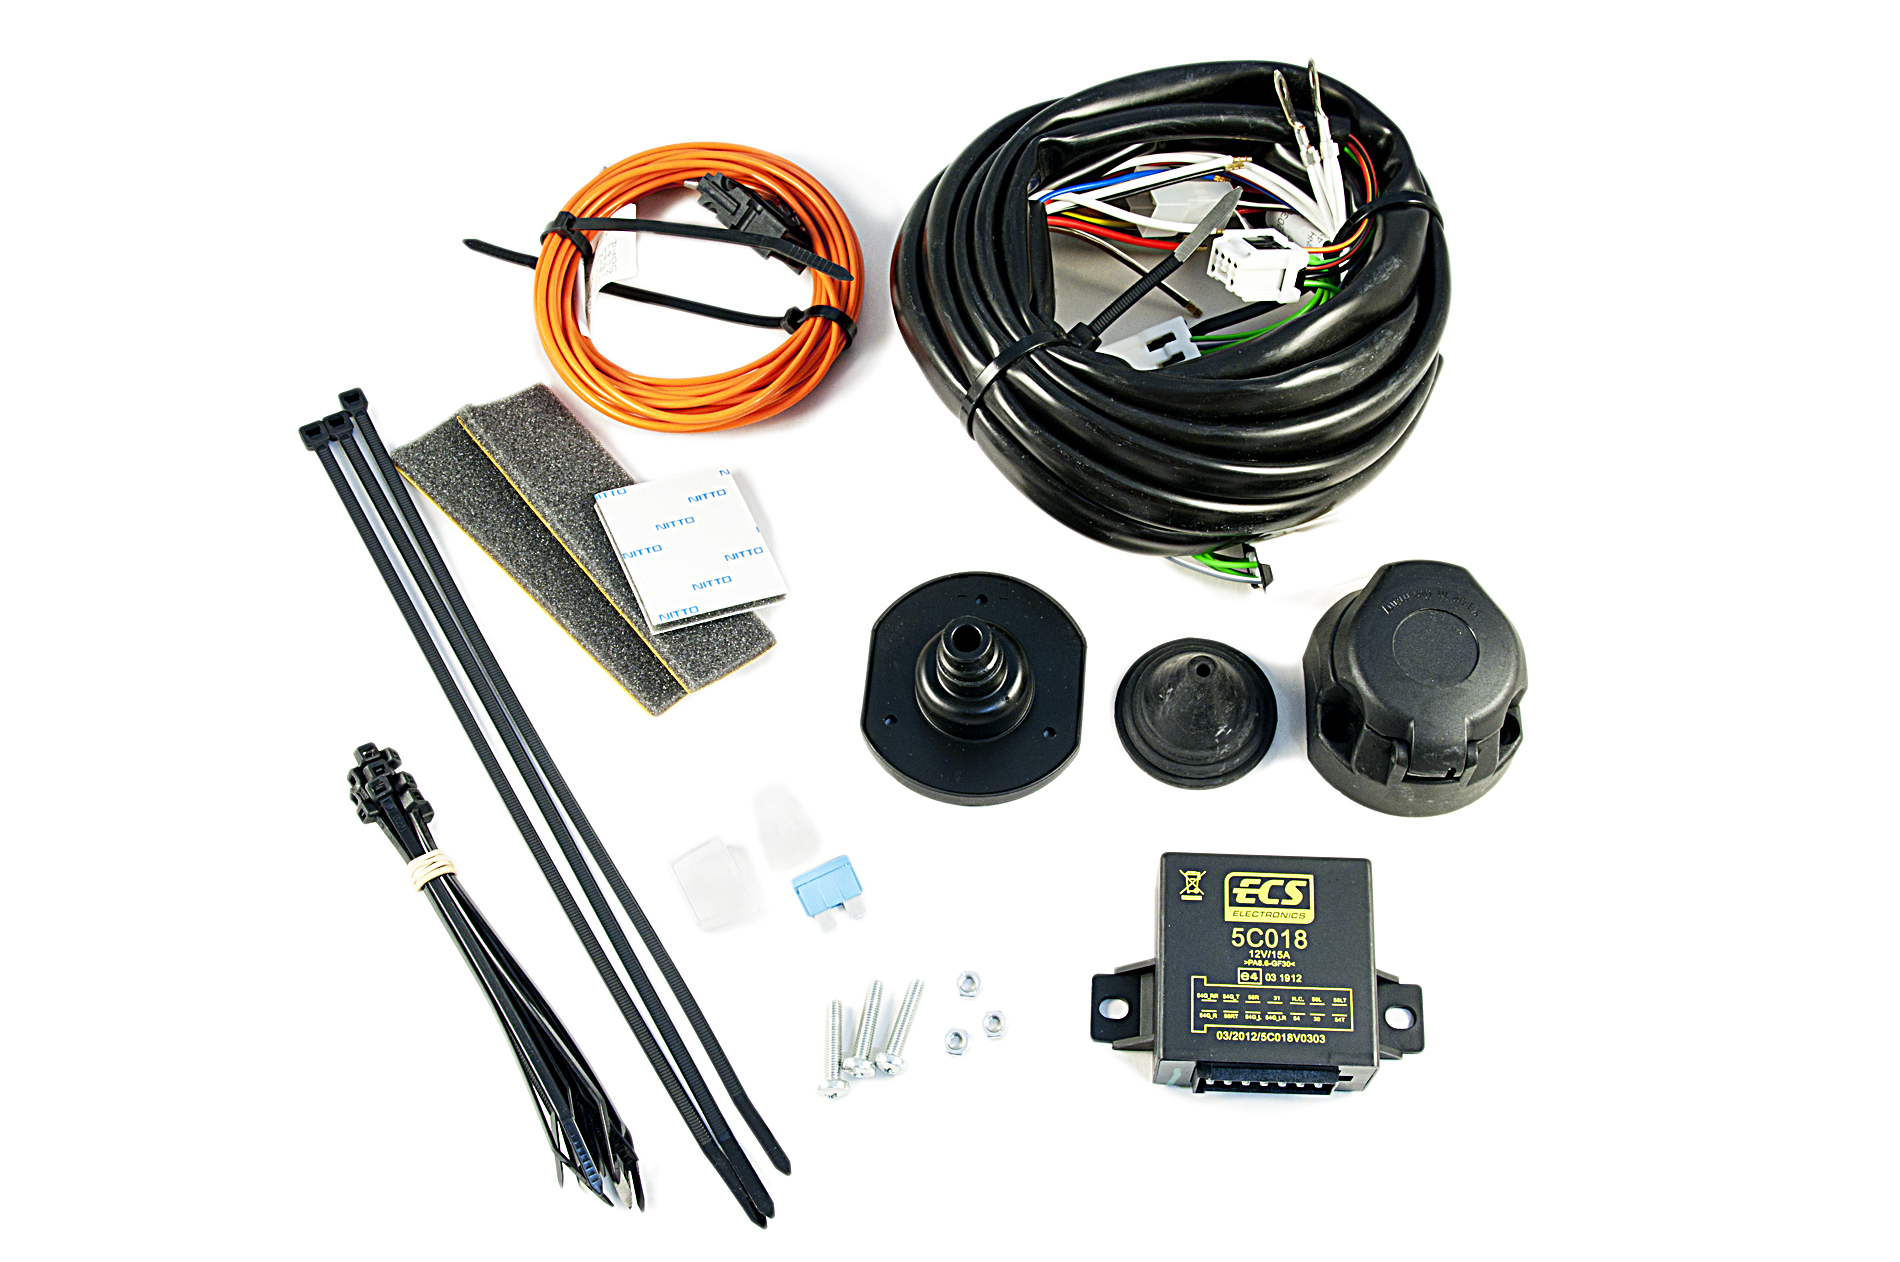 2005 nissan pathfinder radio wiring diagram sailboat battery 4 pin trailer ke harness get free image about